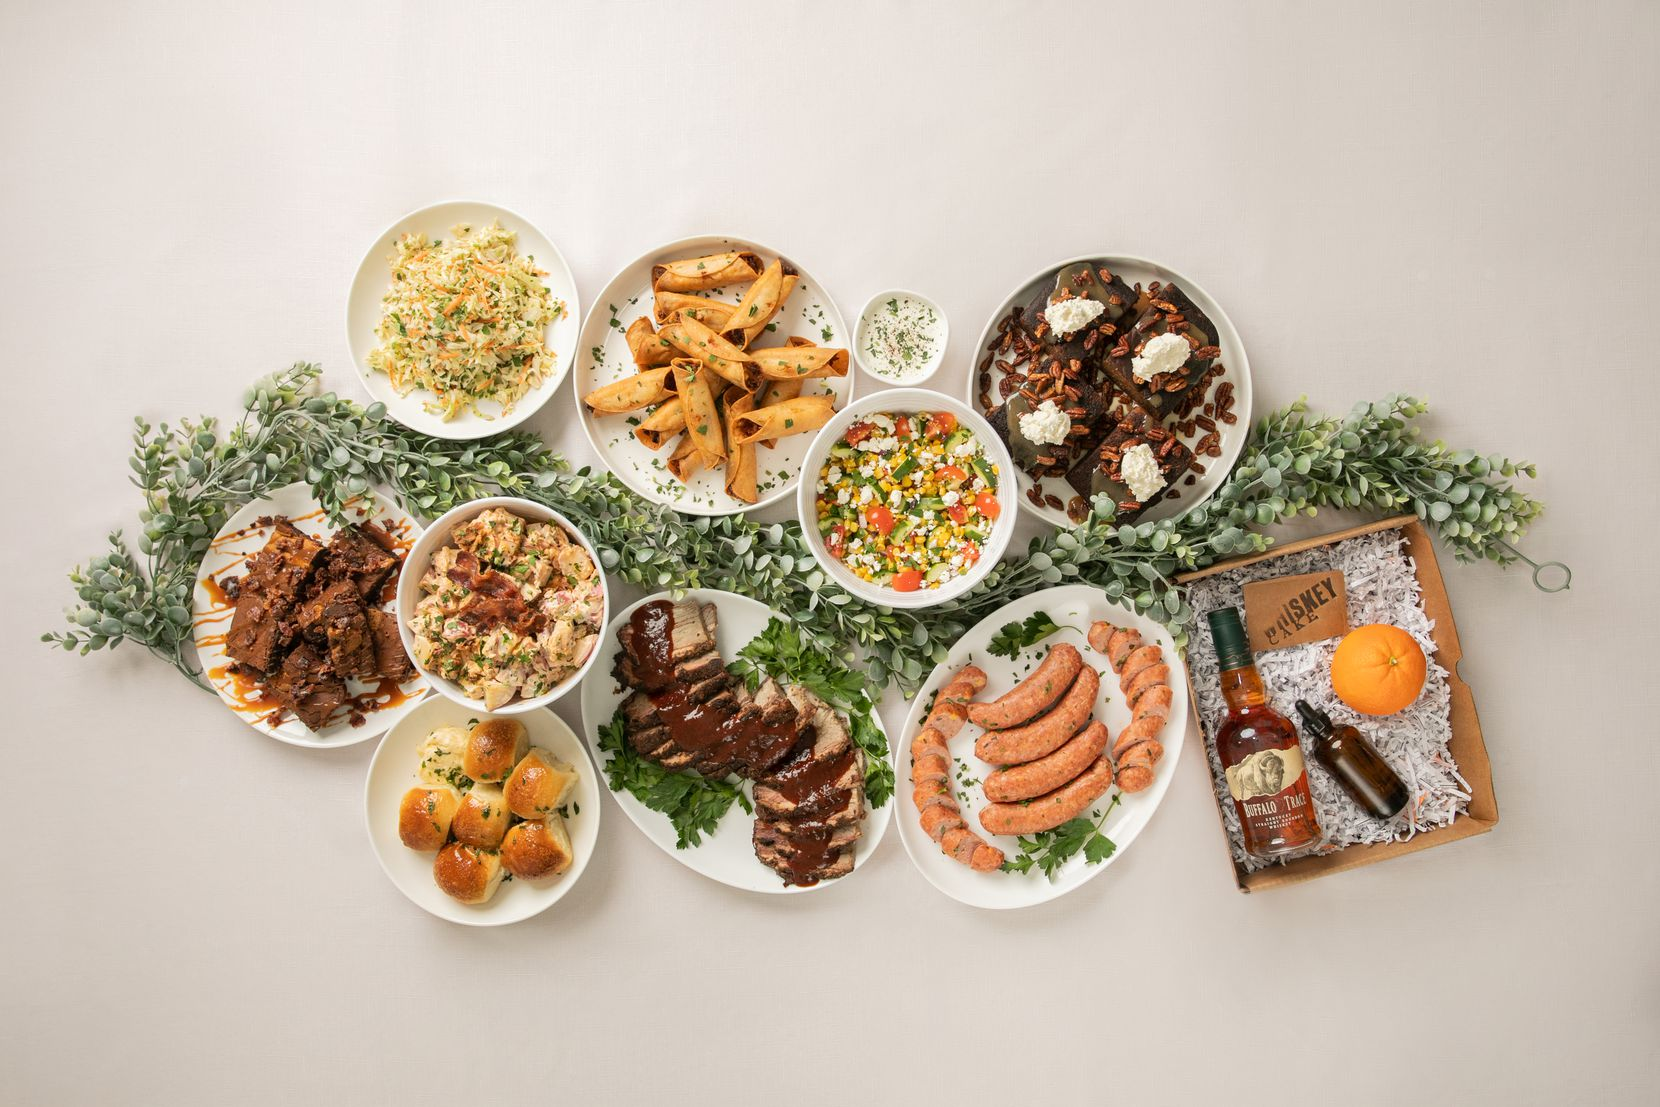 Vestals Catering offerings a ready-to-reheat meal for four to six people for the Father's Day holiday.